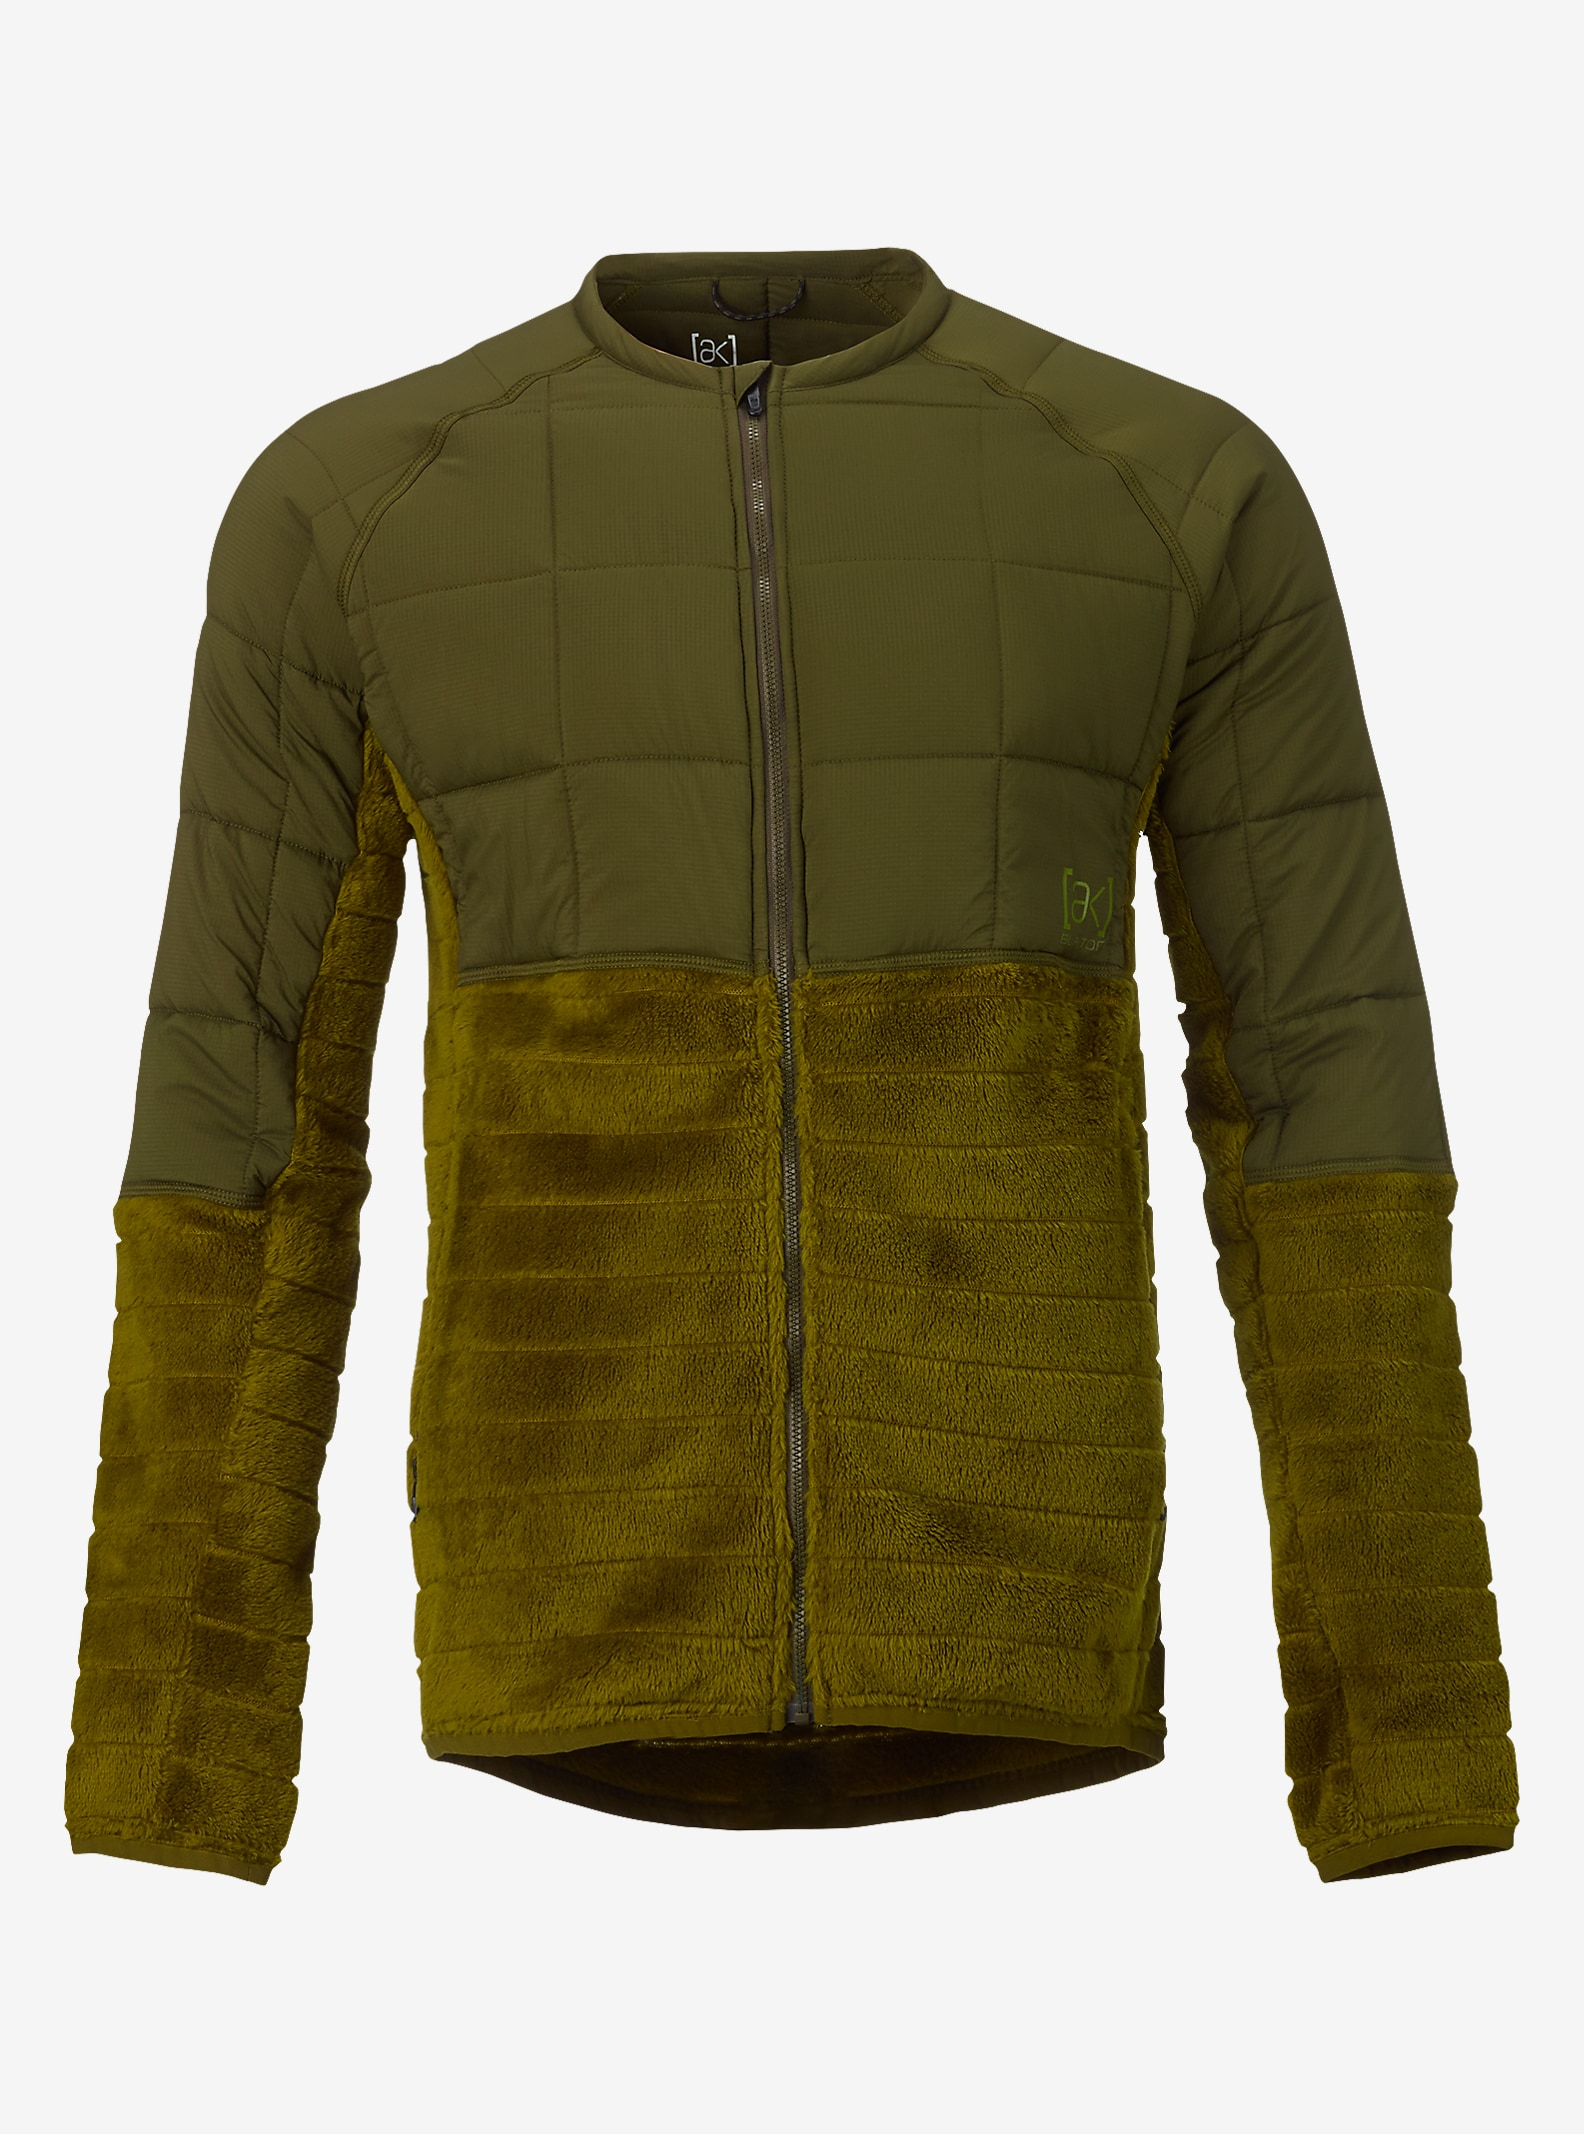 Burton [ak] Hybrid Isojacke angezeigt in Jungle / Fir